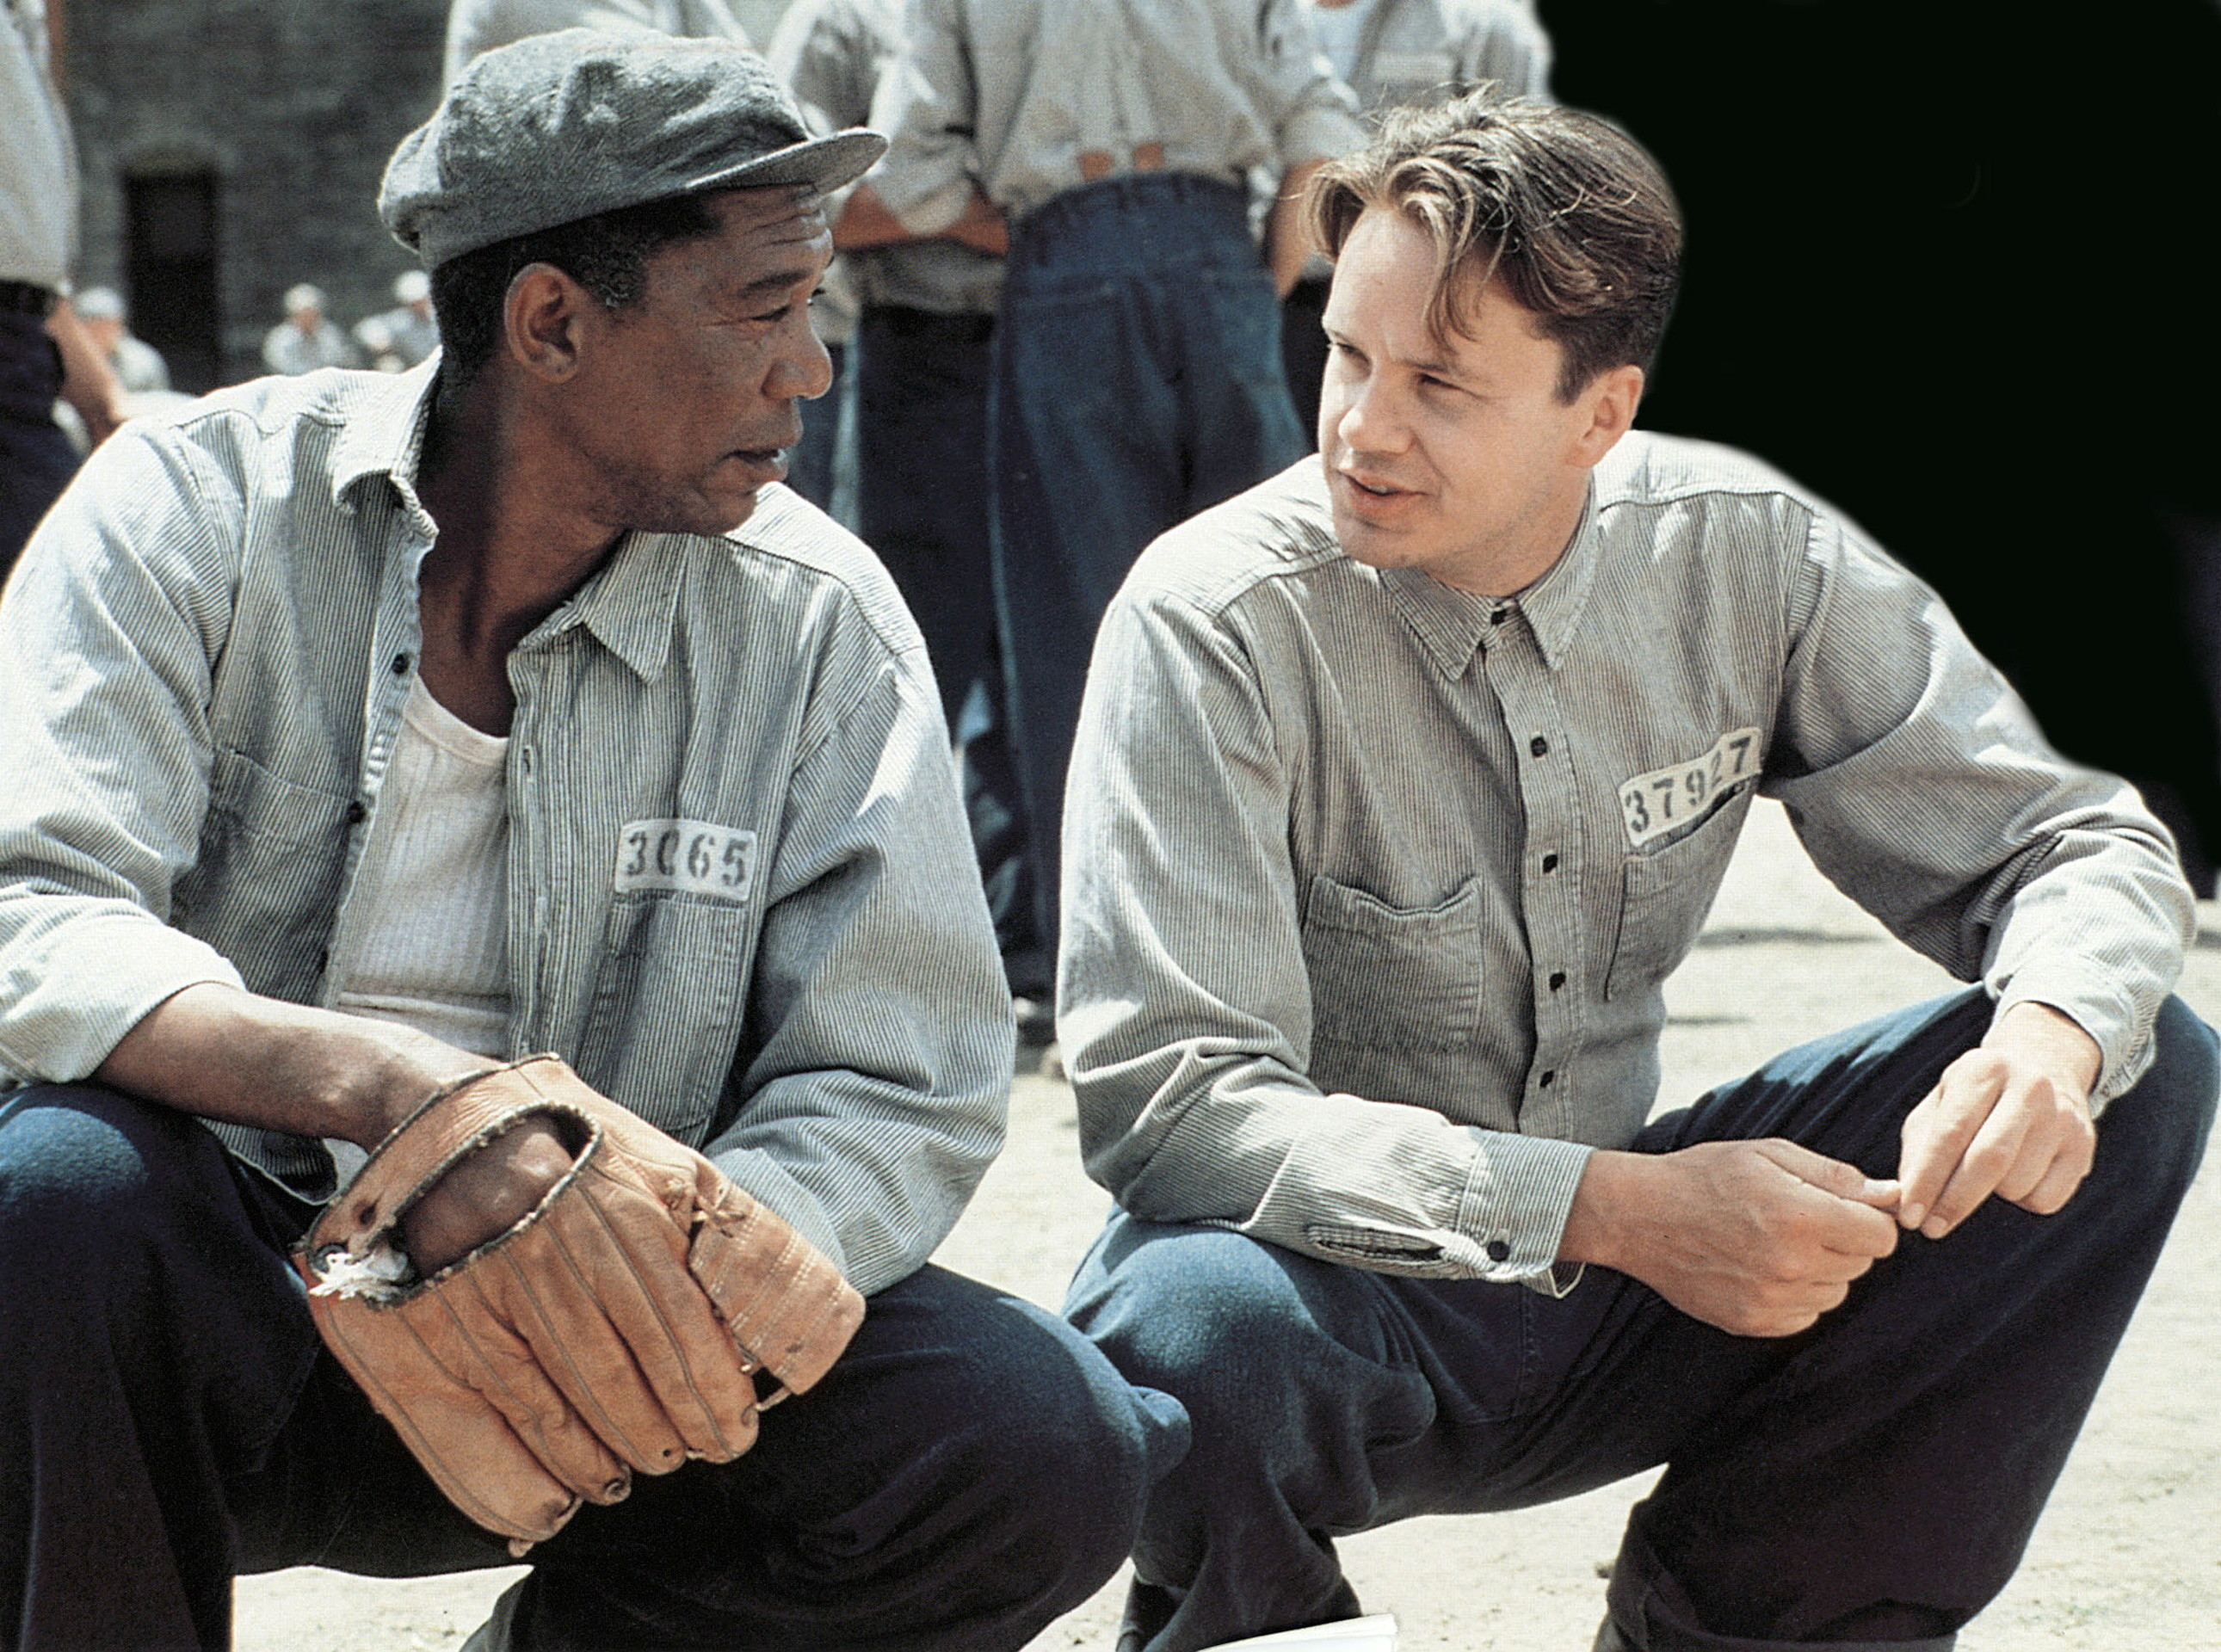 What issues are raised in THE SHAWSHANK REDEMPTION?